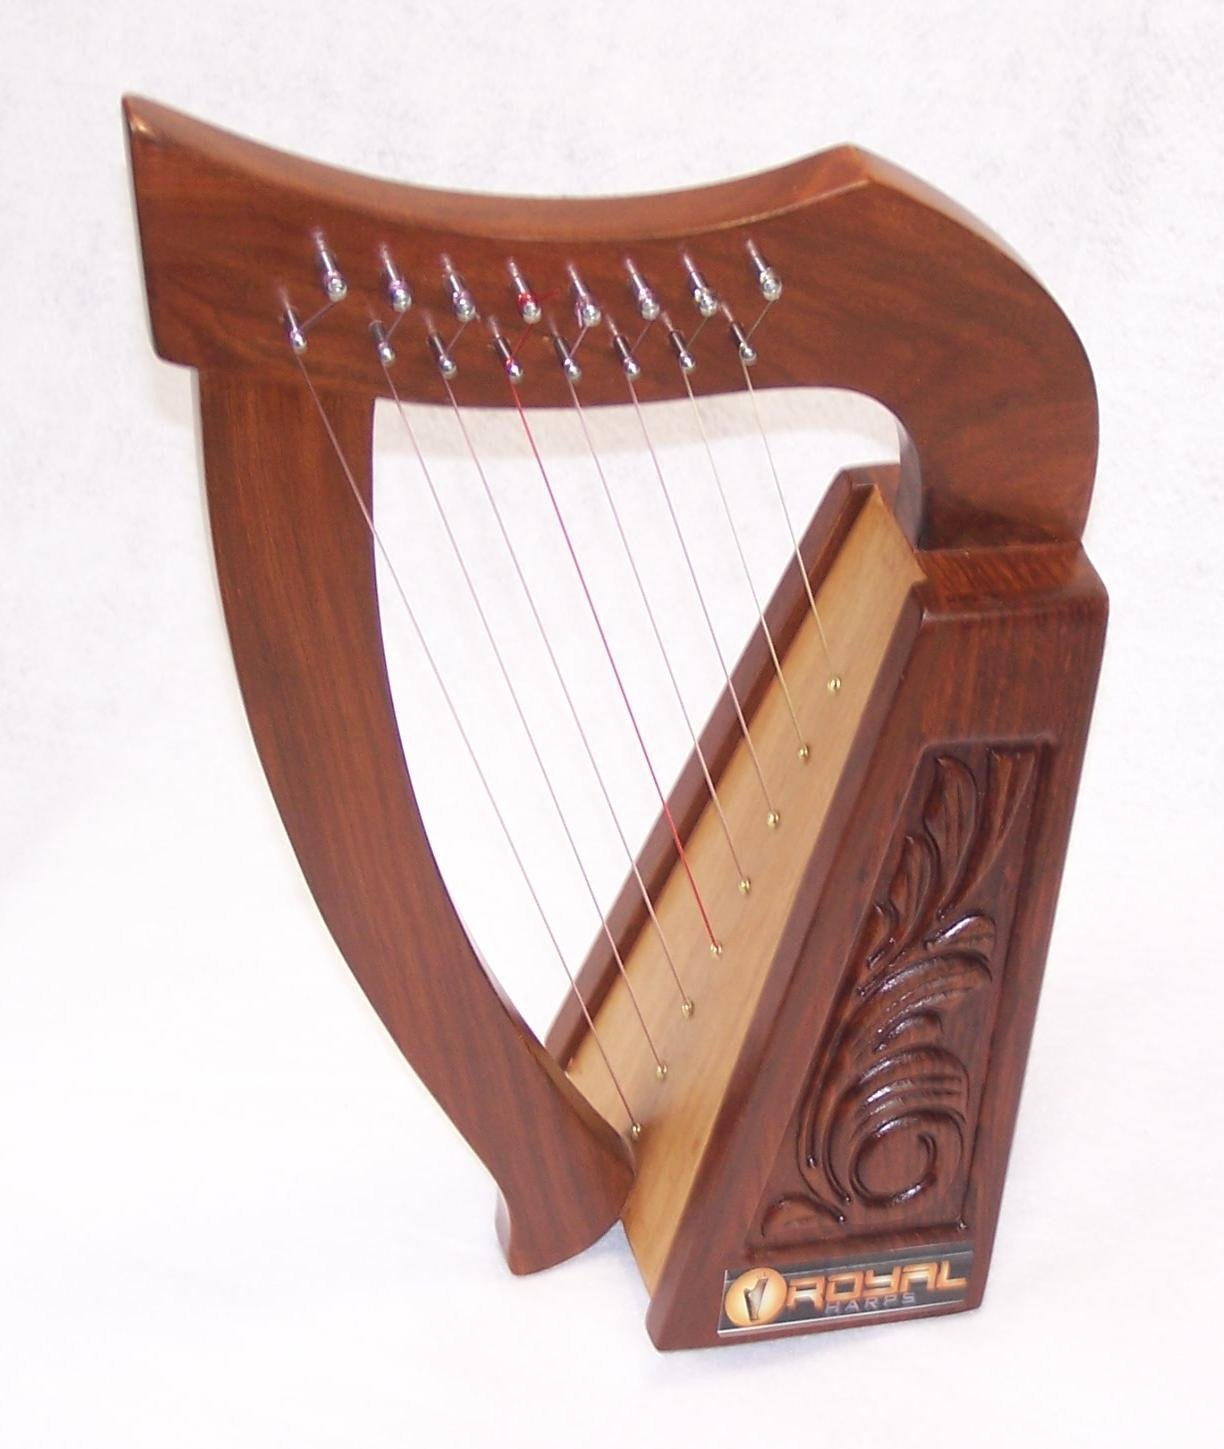 Mini Rosewood Harp 8 strings for Children with Bag Tuning key and extra Strings hand made by Sturgis